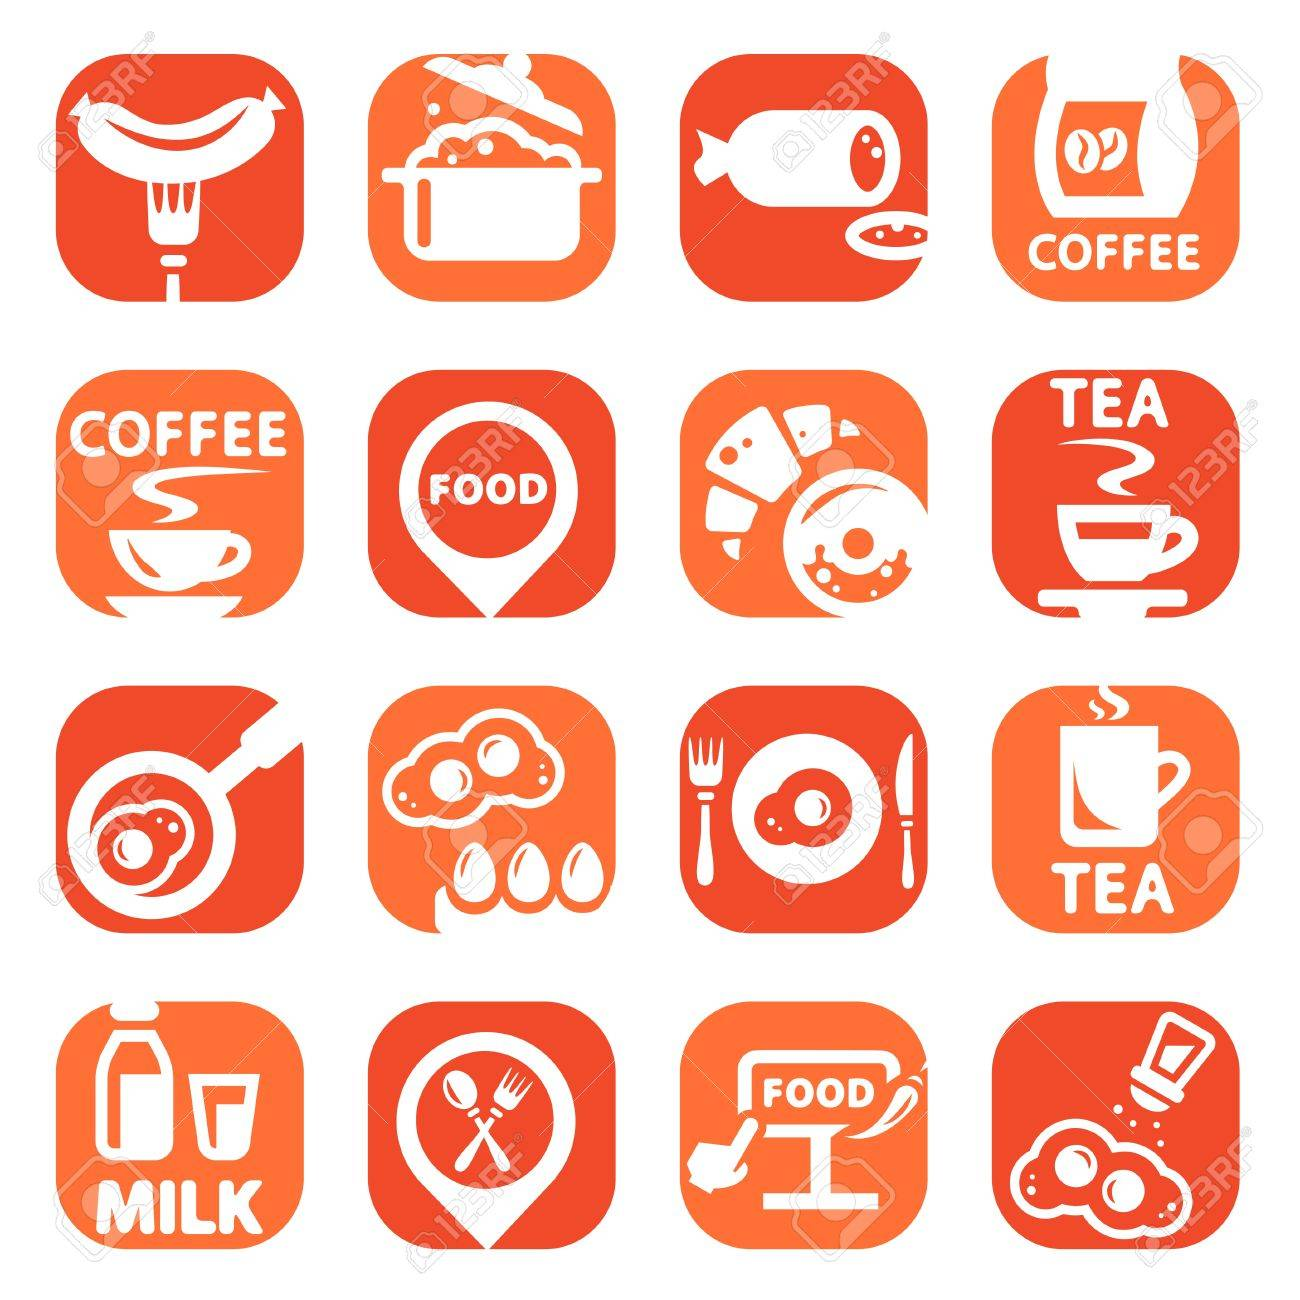 Color Food Vector Icons Set Created For Mobile, Web And Applications Stock Vector - 19797340